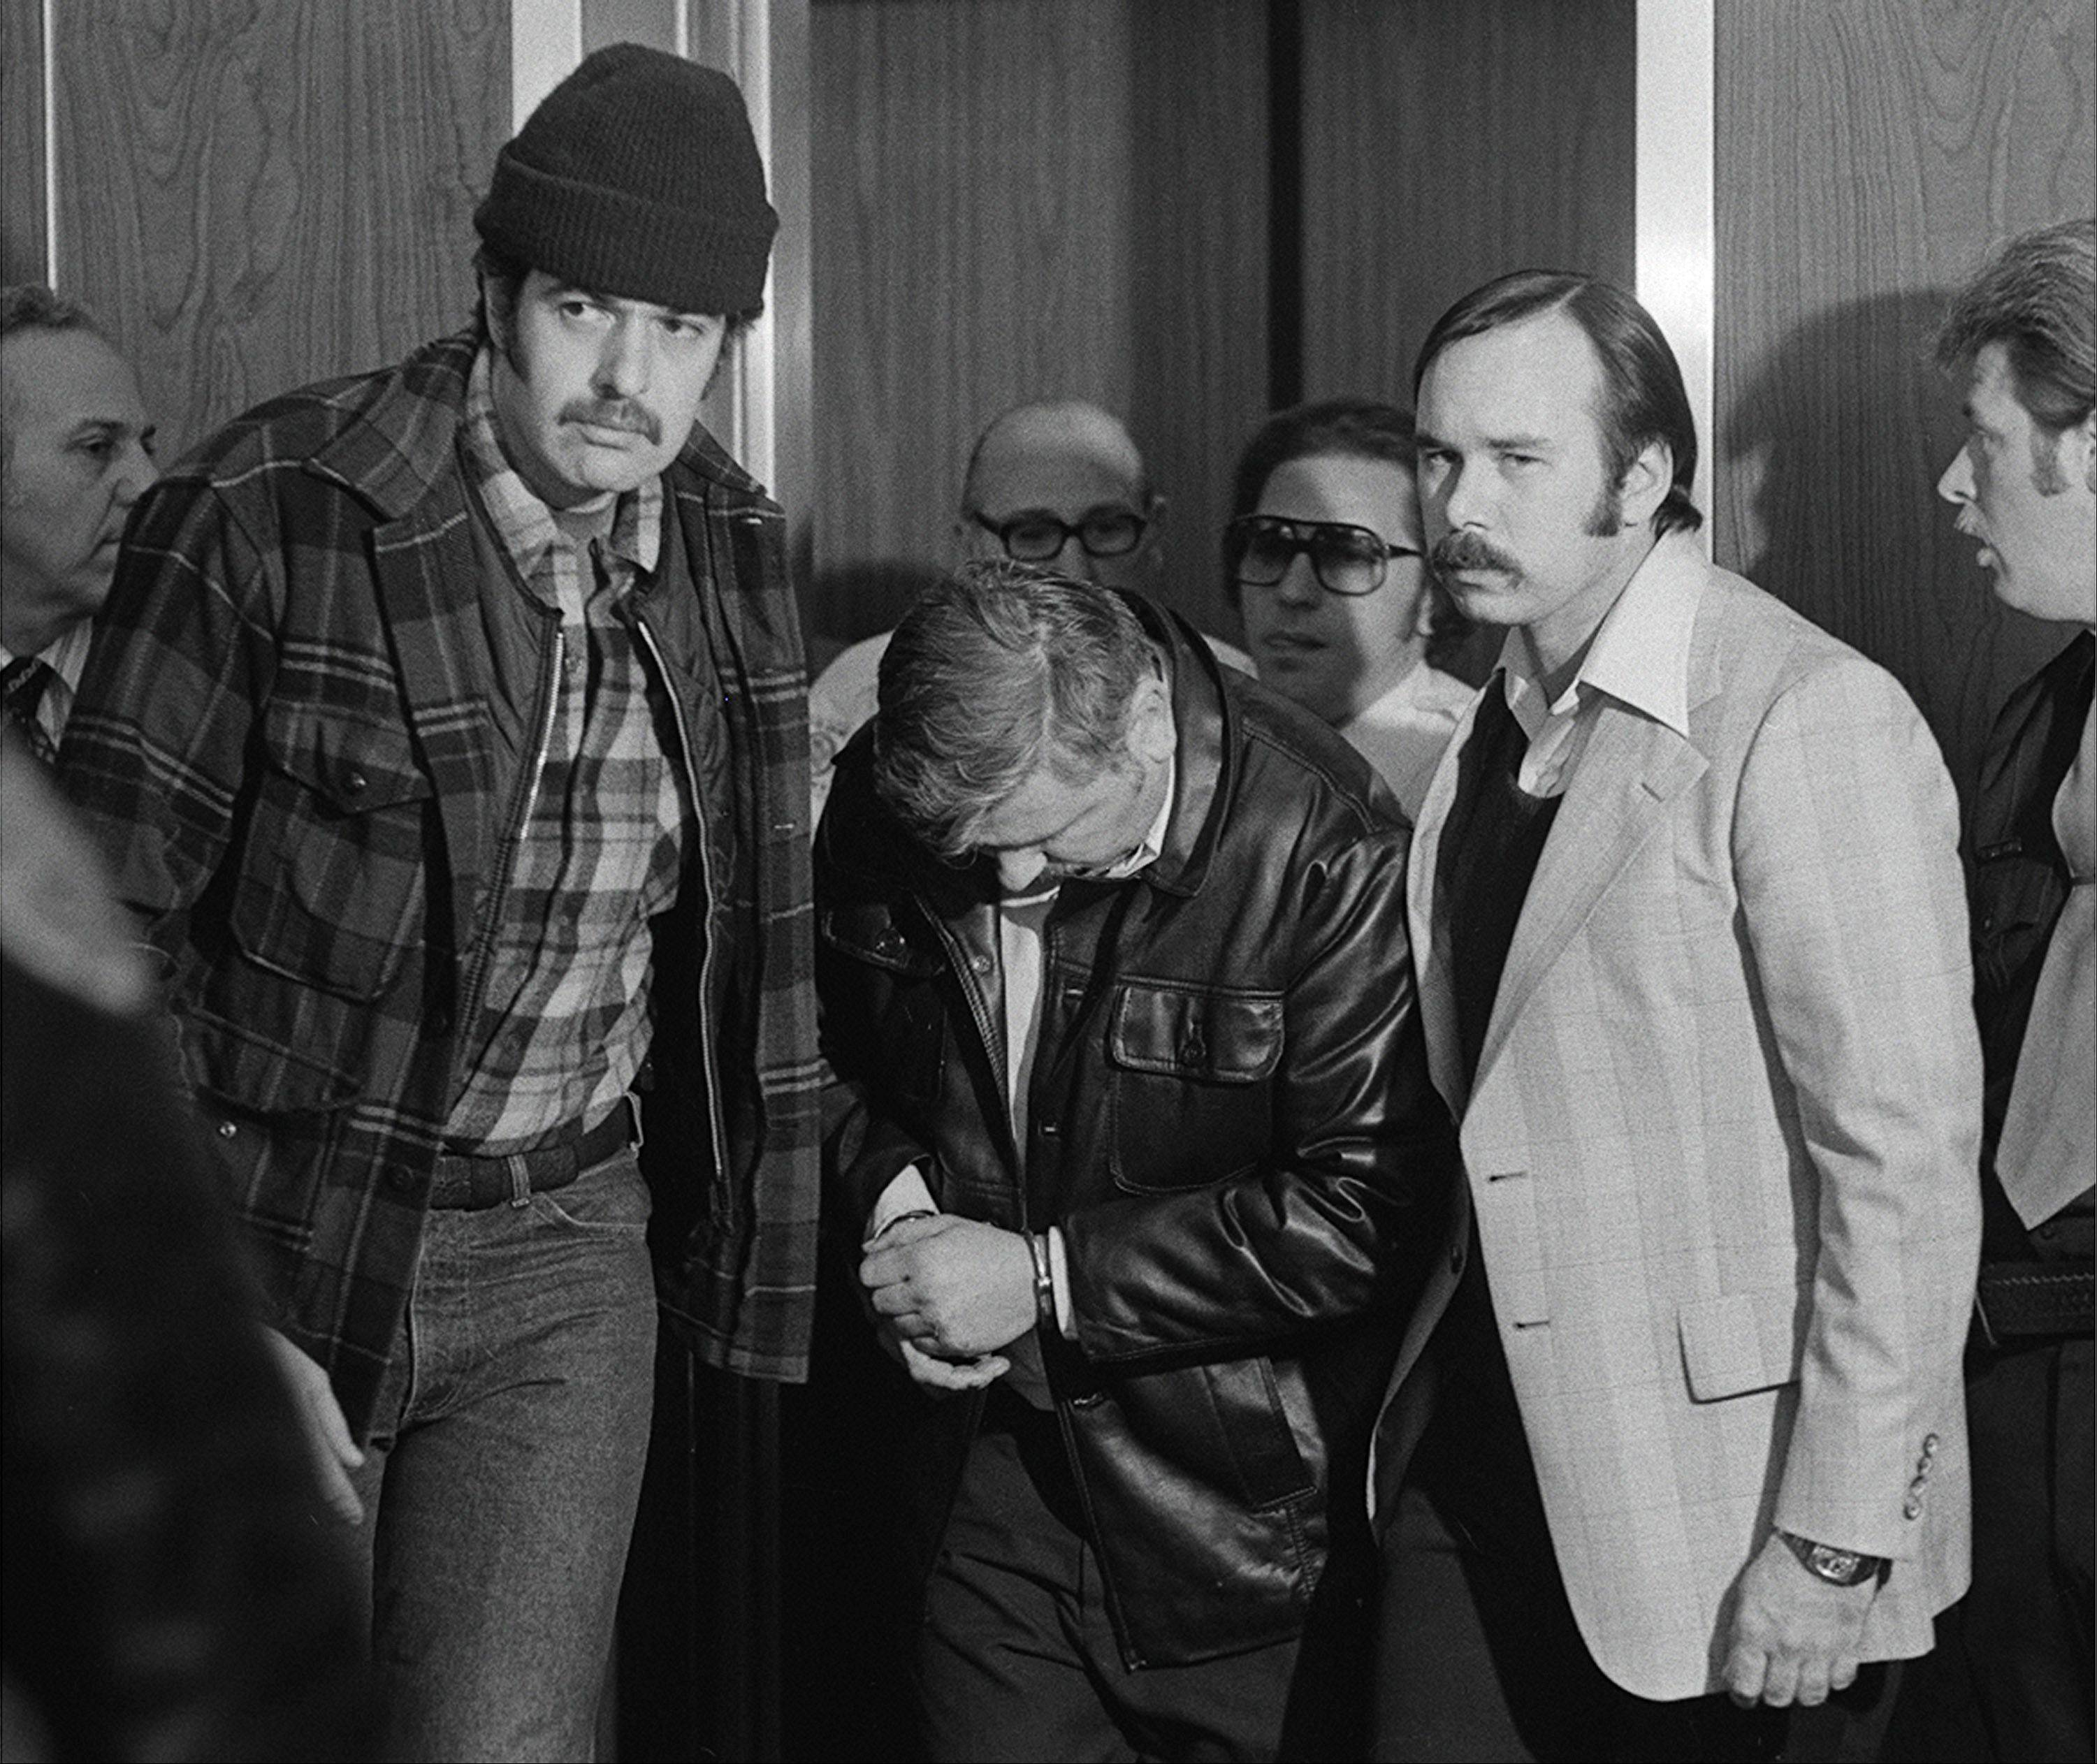 Des Plaines detectives take John Wayne Gacy to jail.